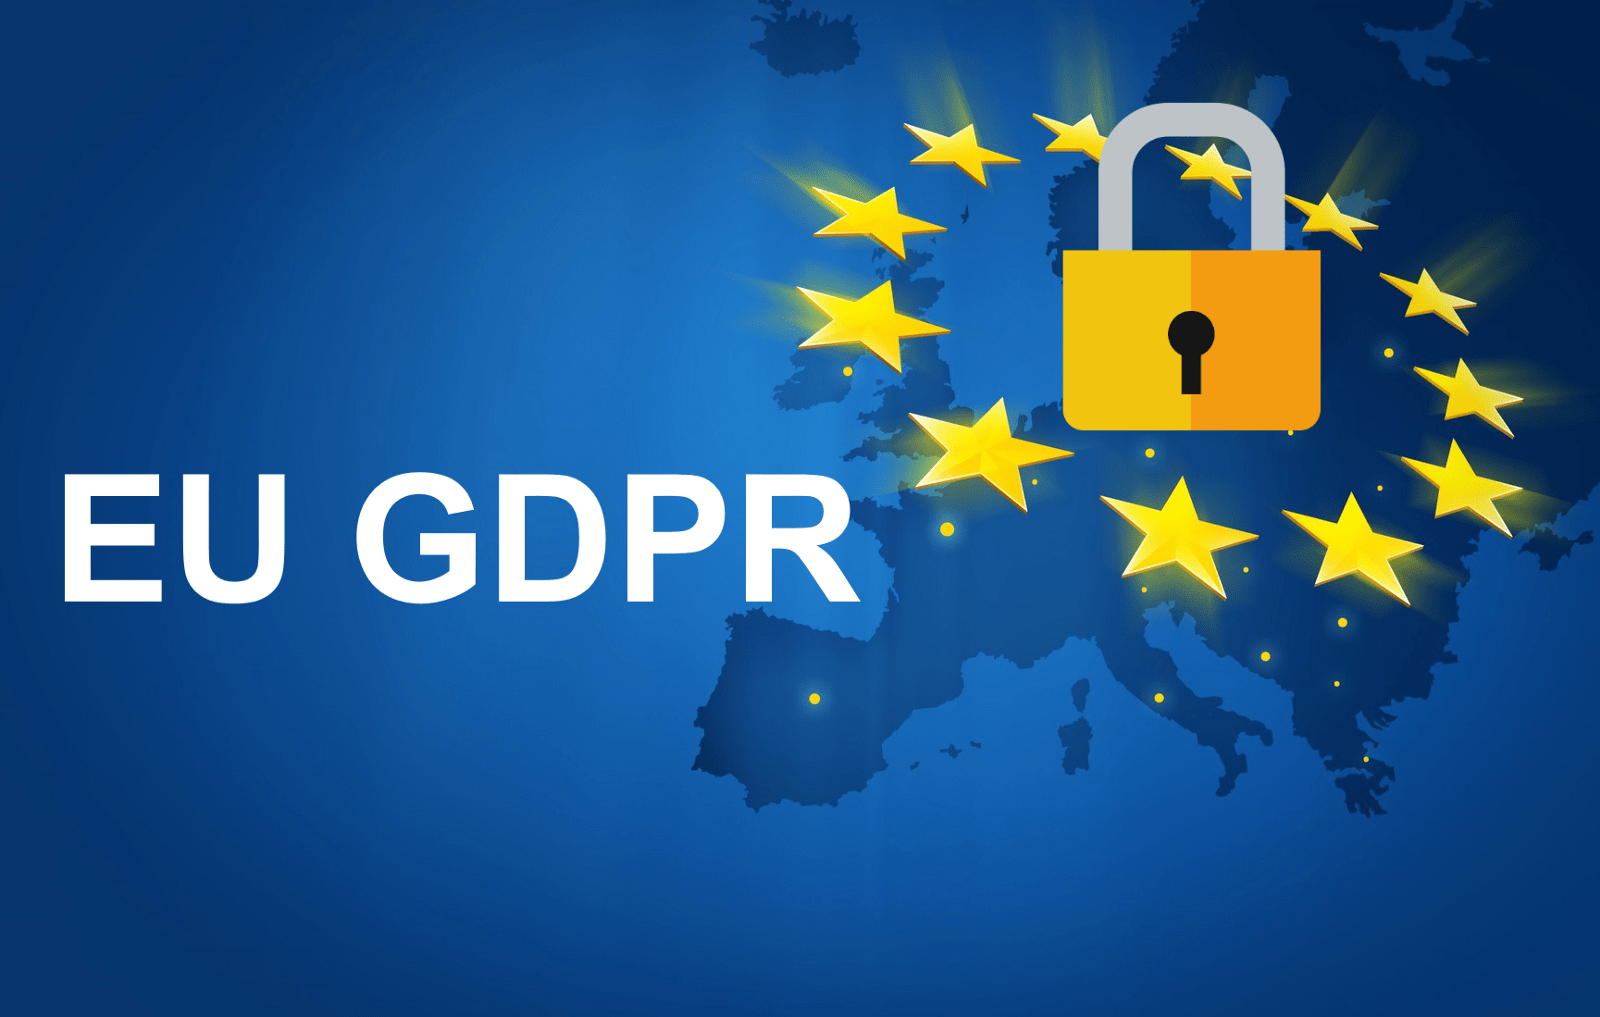 Map fo Europe, covered by twelve stars, a lock and the phrase 'EU GDPR'.